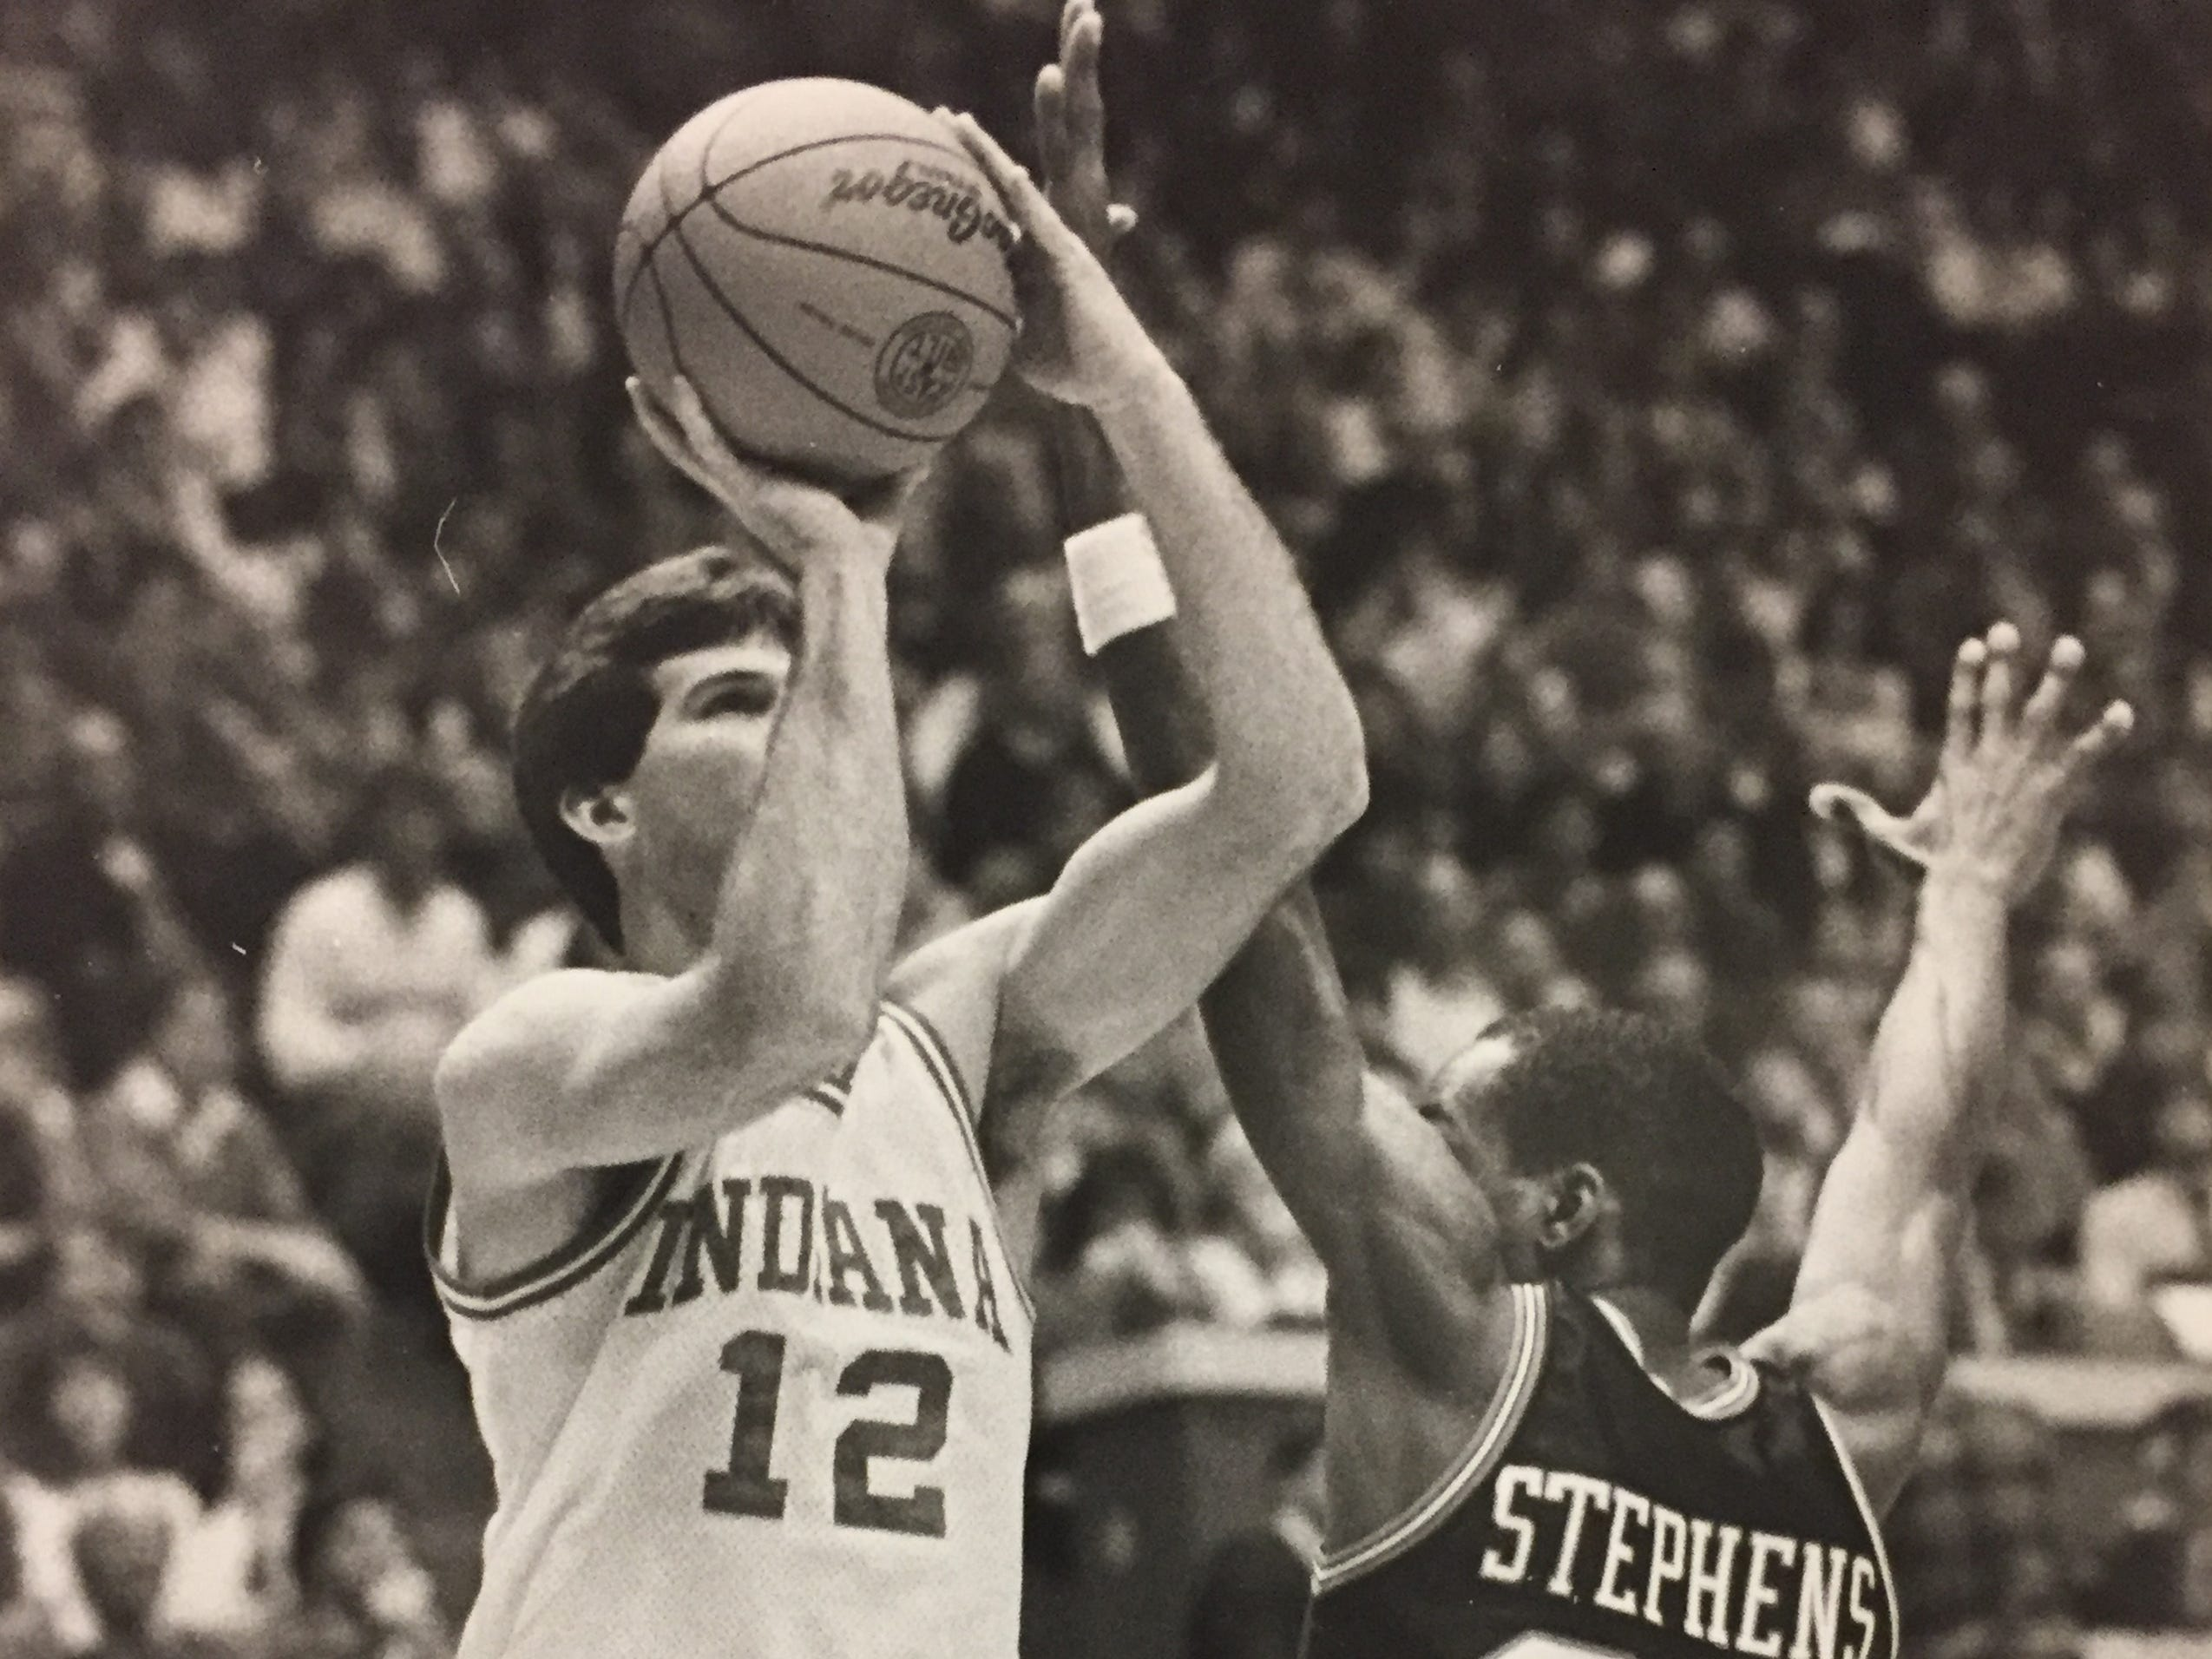 Steve Alford puts up a shot over Purdue's Everette Stephns